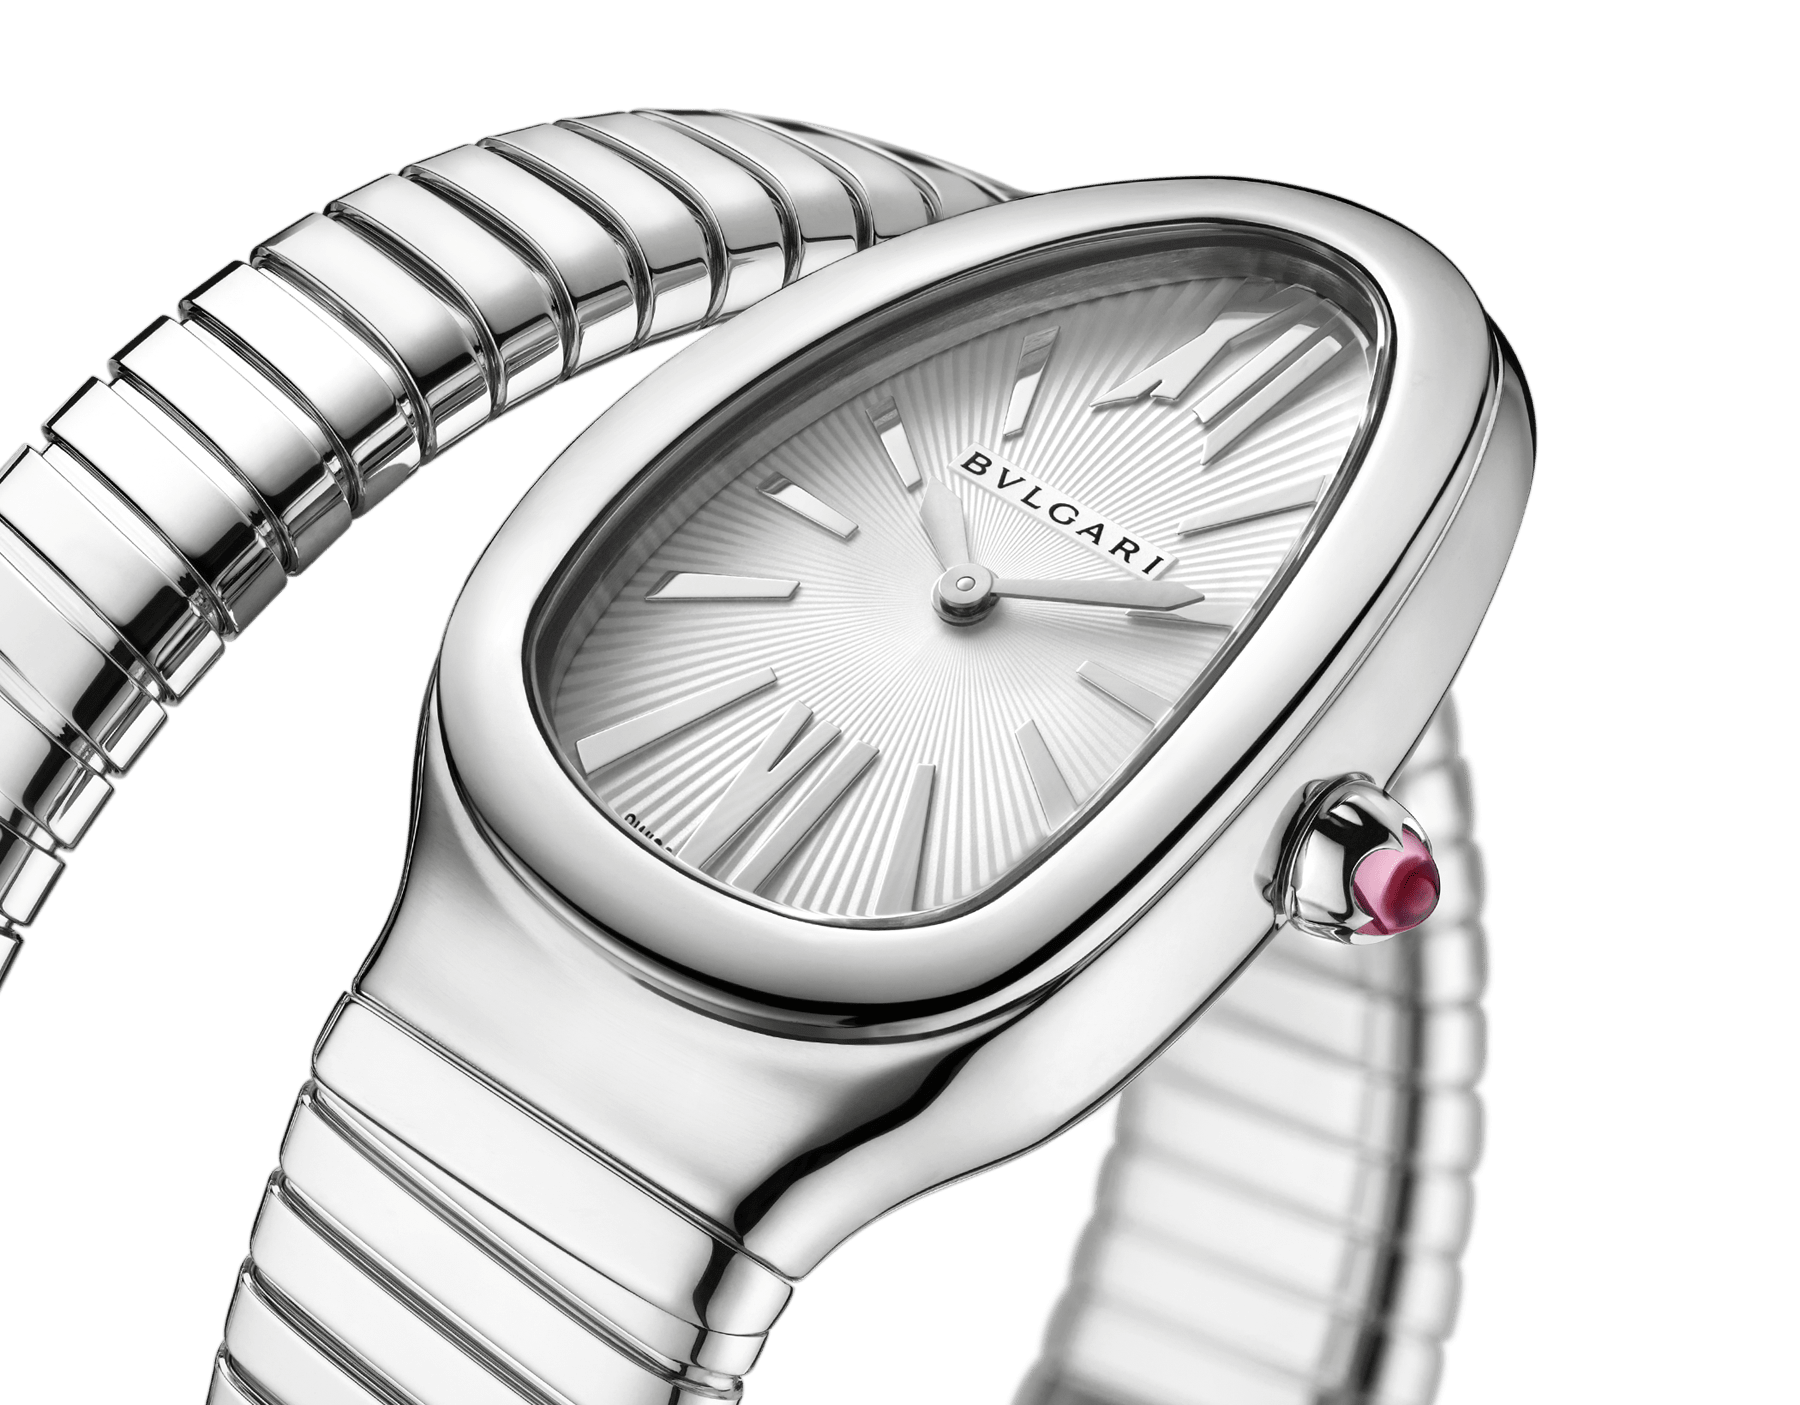 Serpenti Tubogas single spiral watch in stainless steel case and bracelet, with silver opaline dial. Large size. SrpntTubogas-white-dial1 image 3